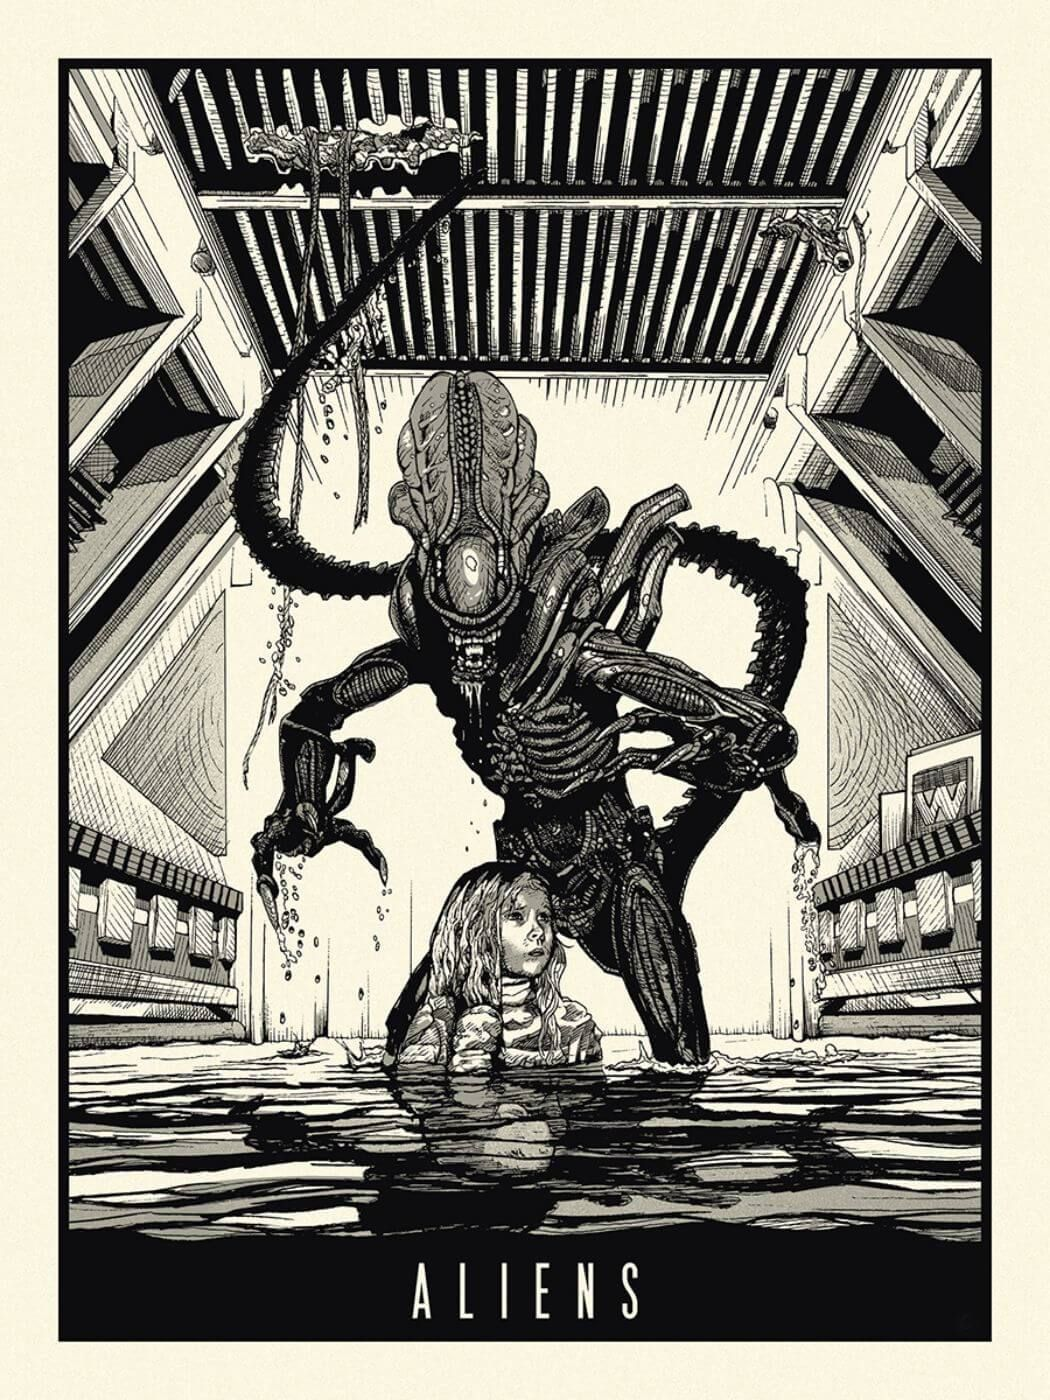 Alien tallenge classic scifi hollywood movie art poster